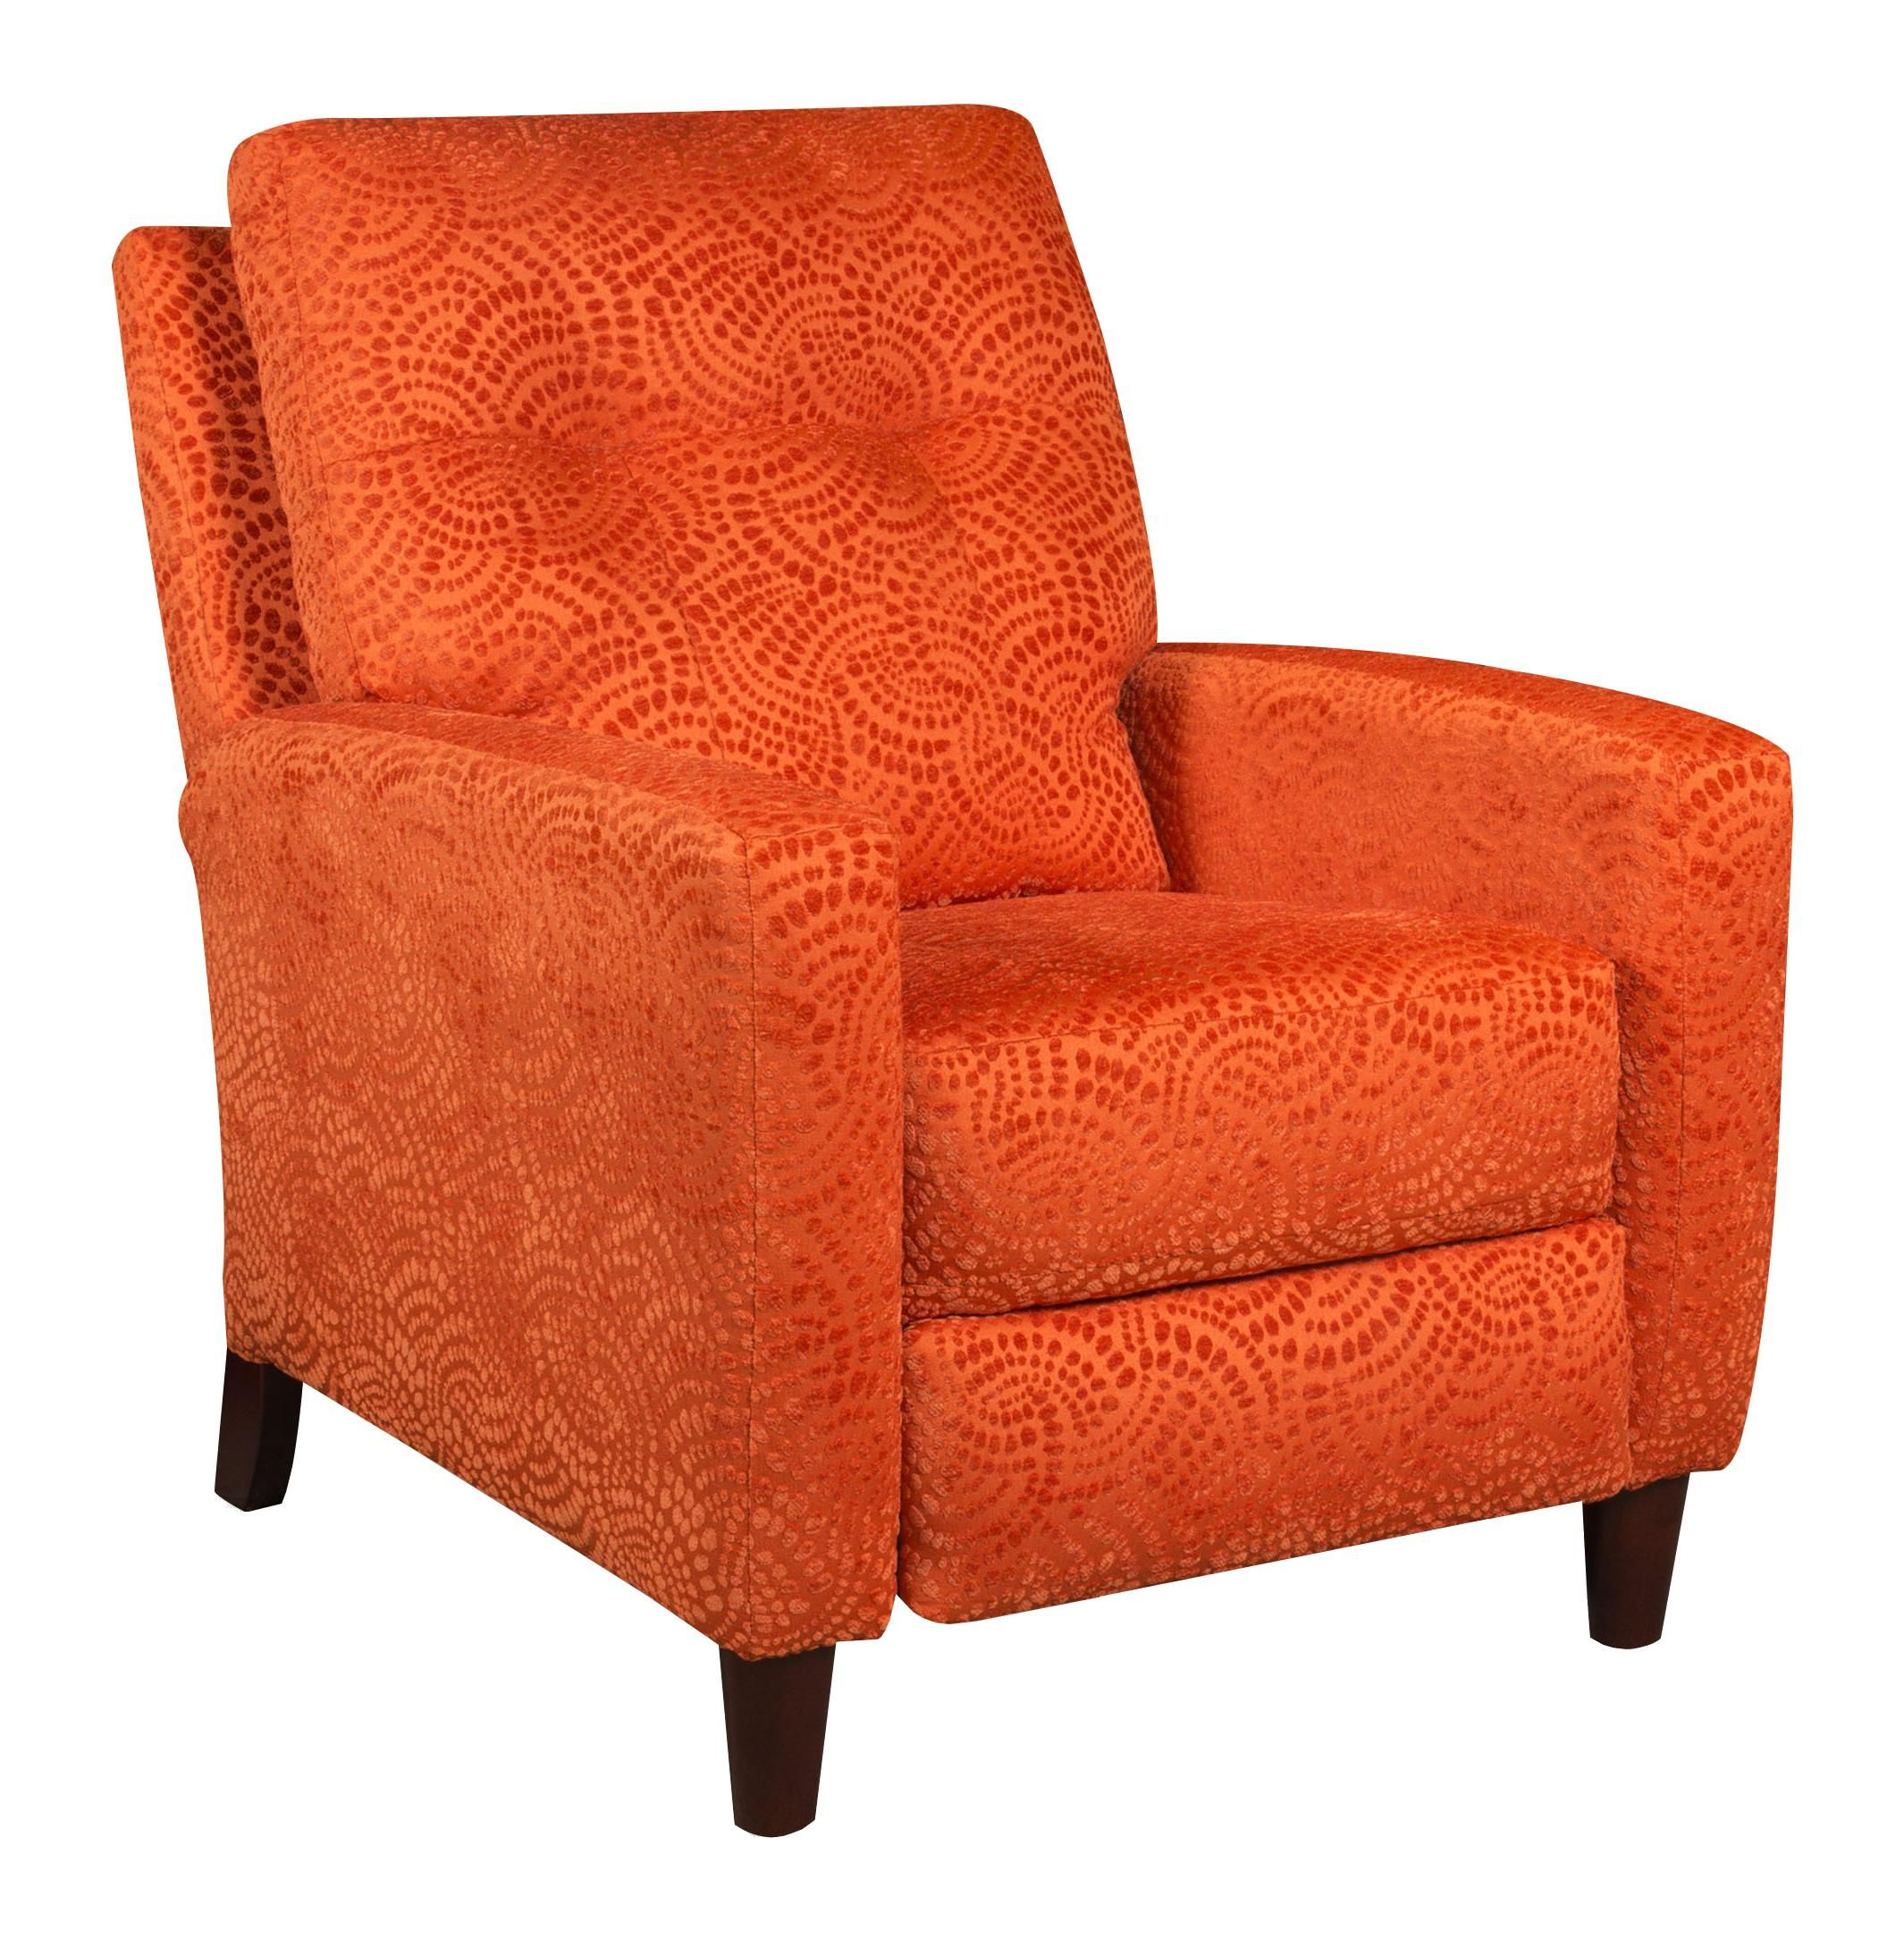 Recliners Bella High Leg Recliner by Southern Motion  My